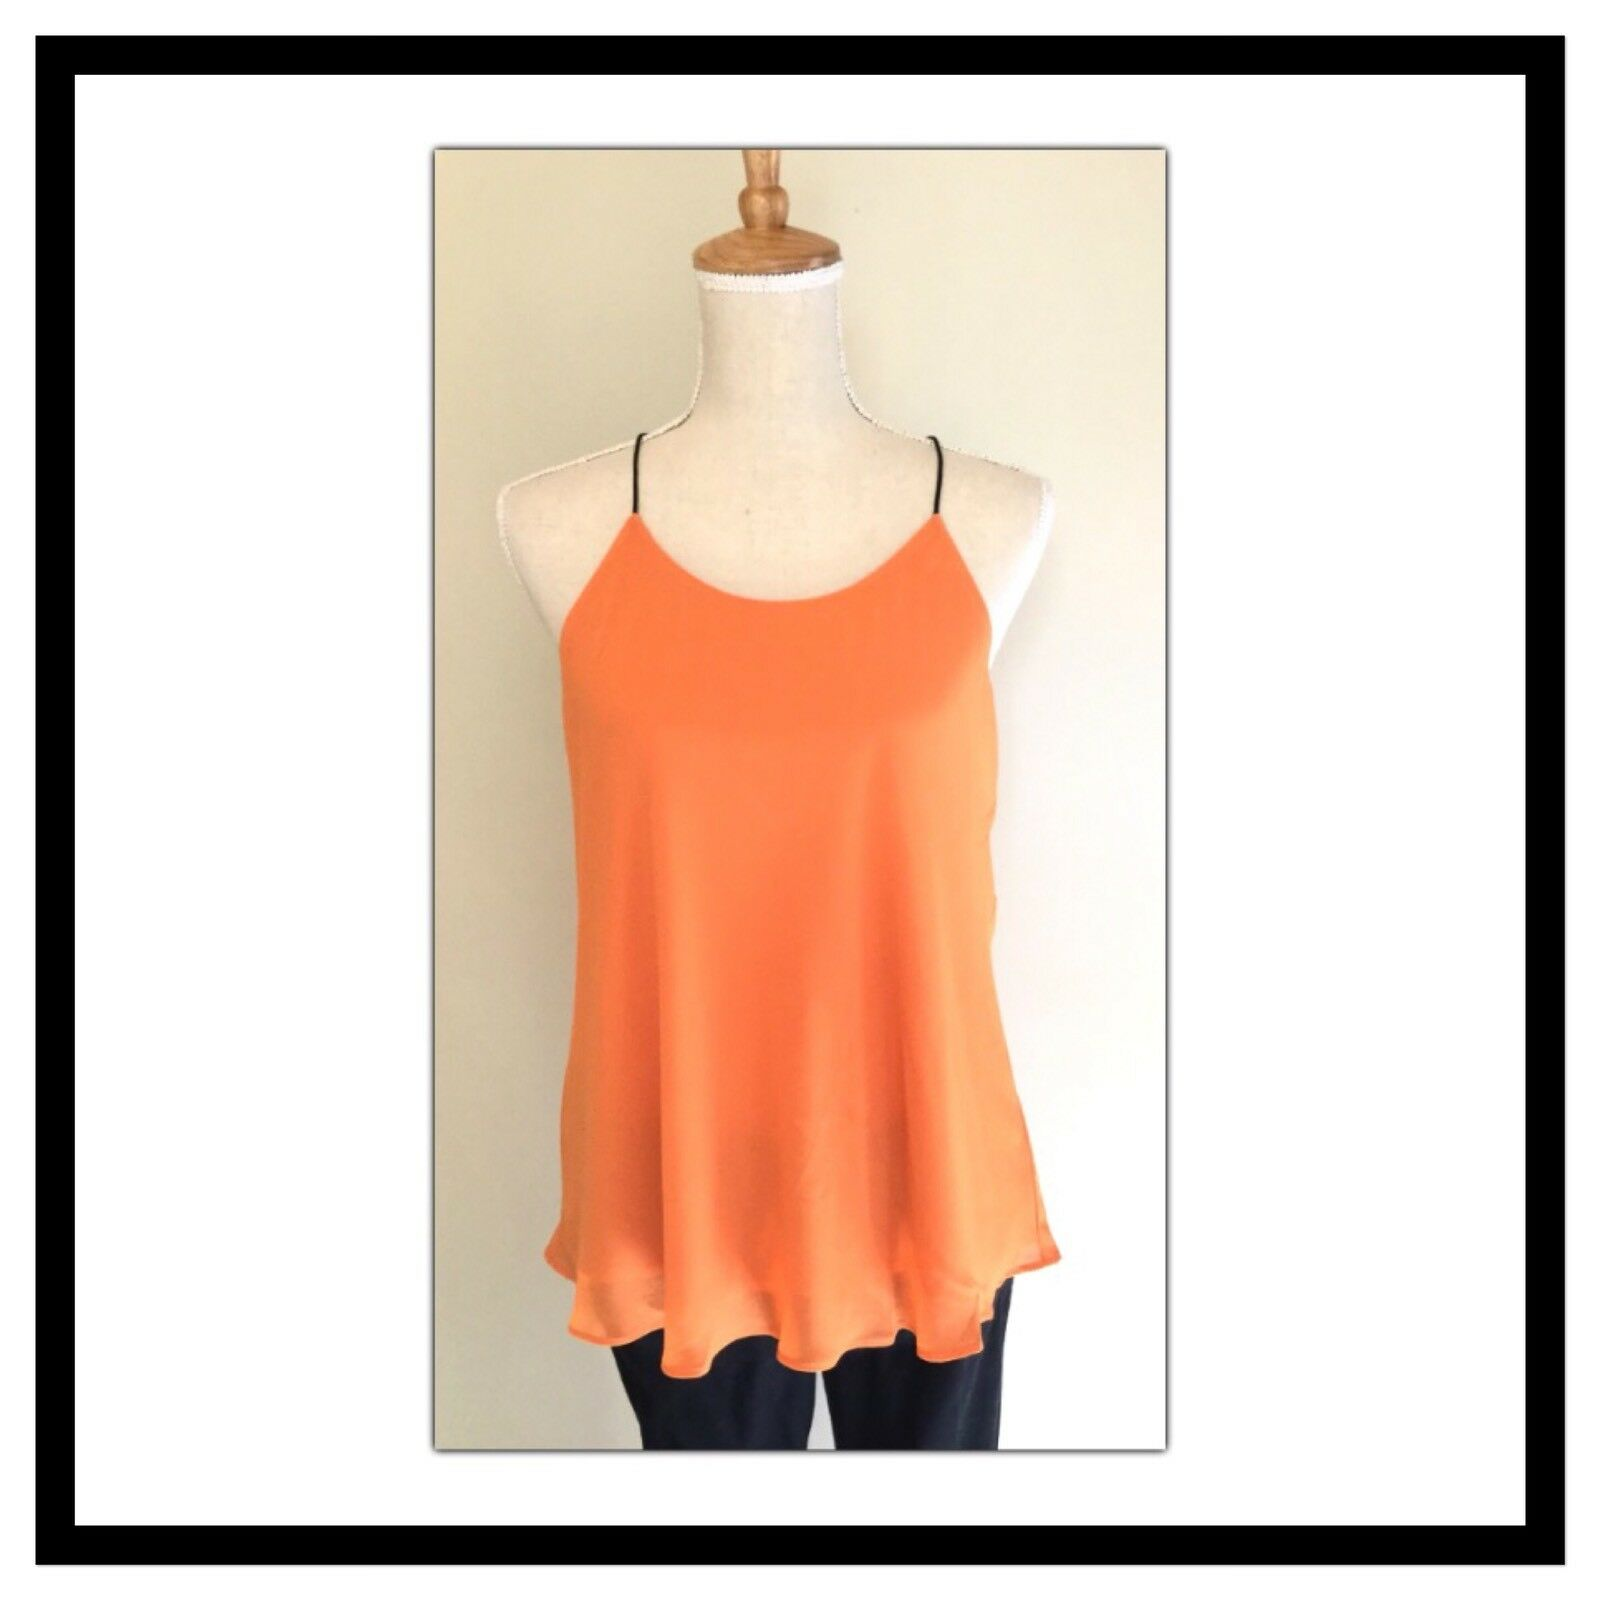 Naked Zebra Orange Racer Back Tank Top Größe Small New With Tags NWT